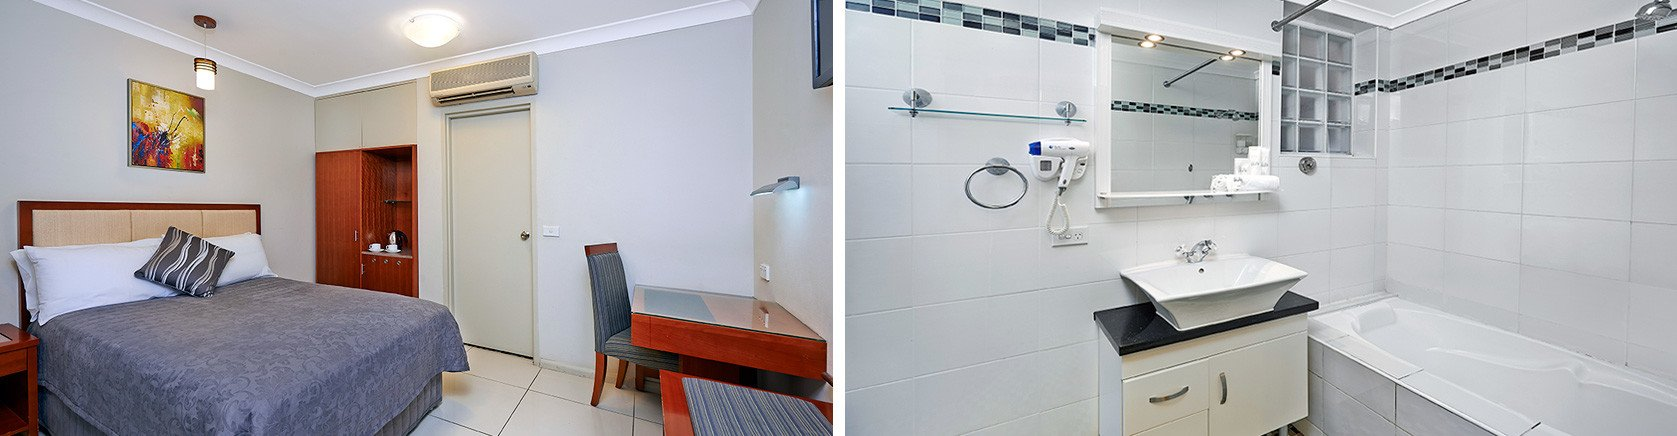 Two images showing single hotel room bedroom with large bed and bathroom with bath